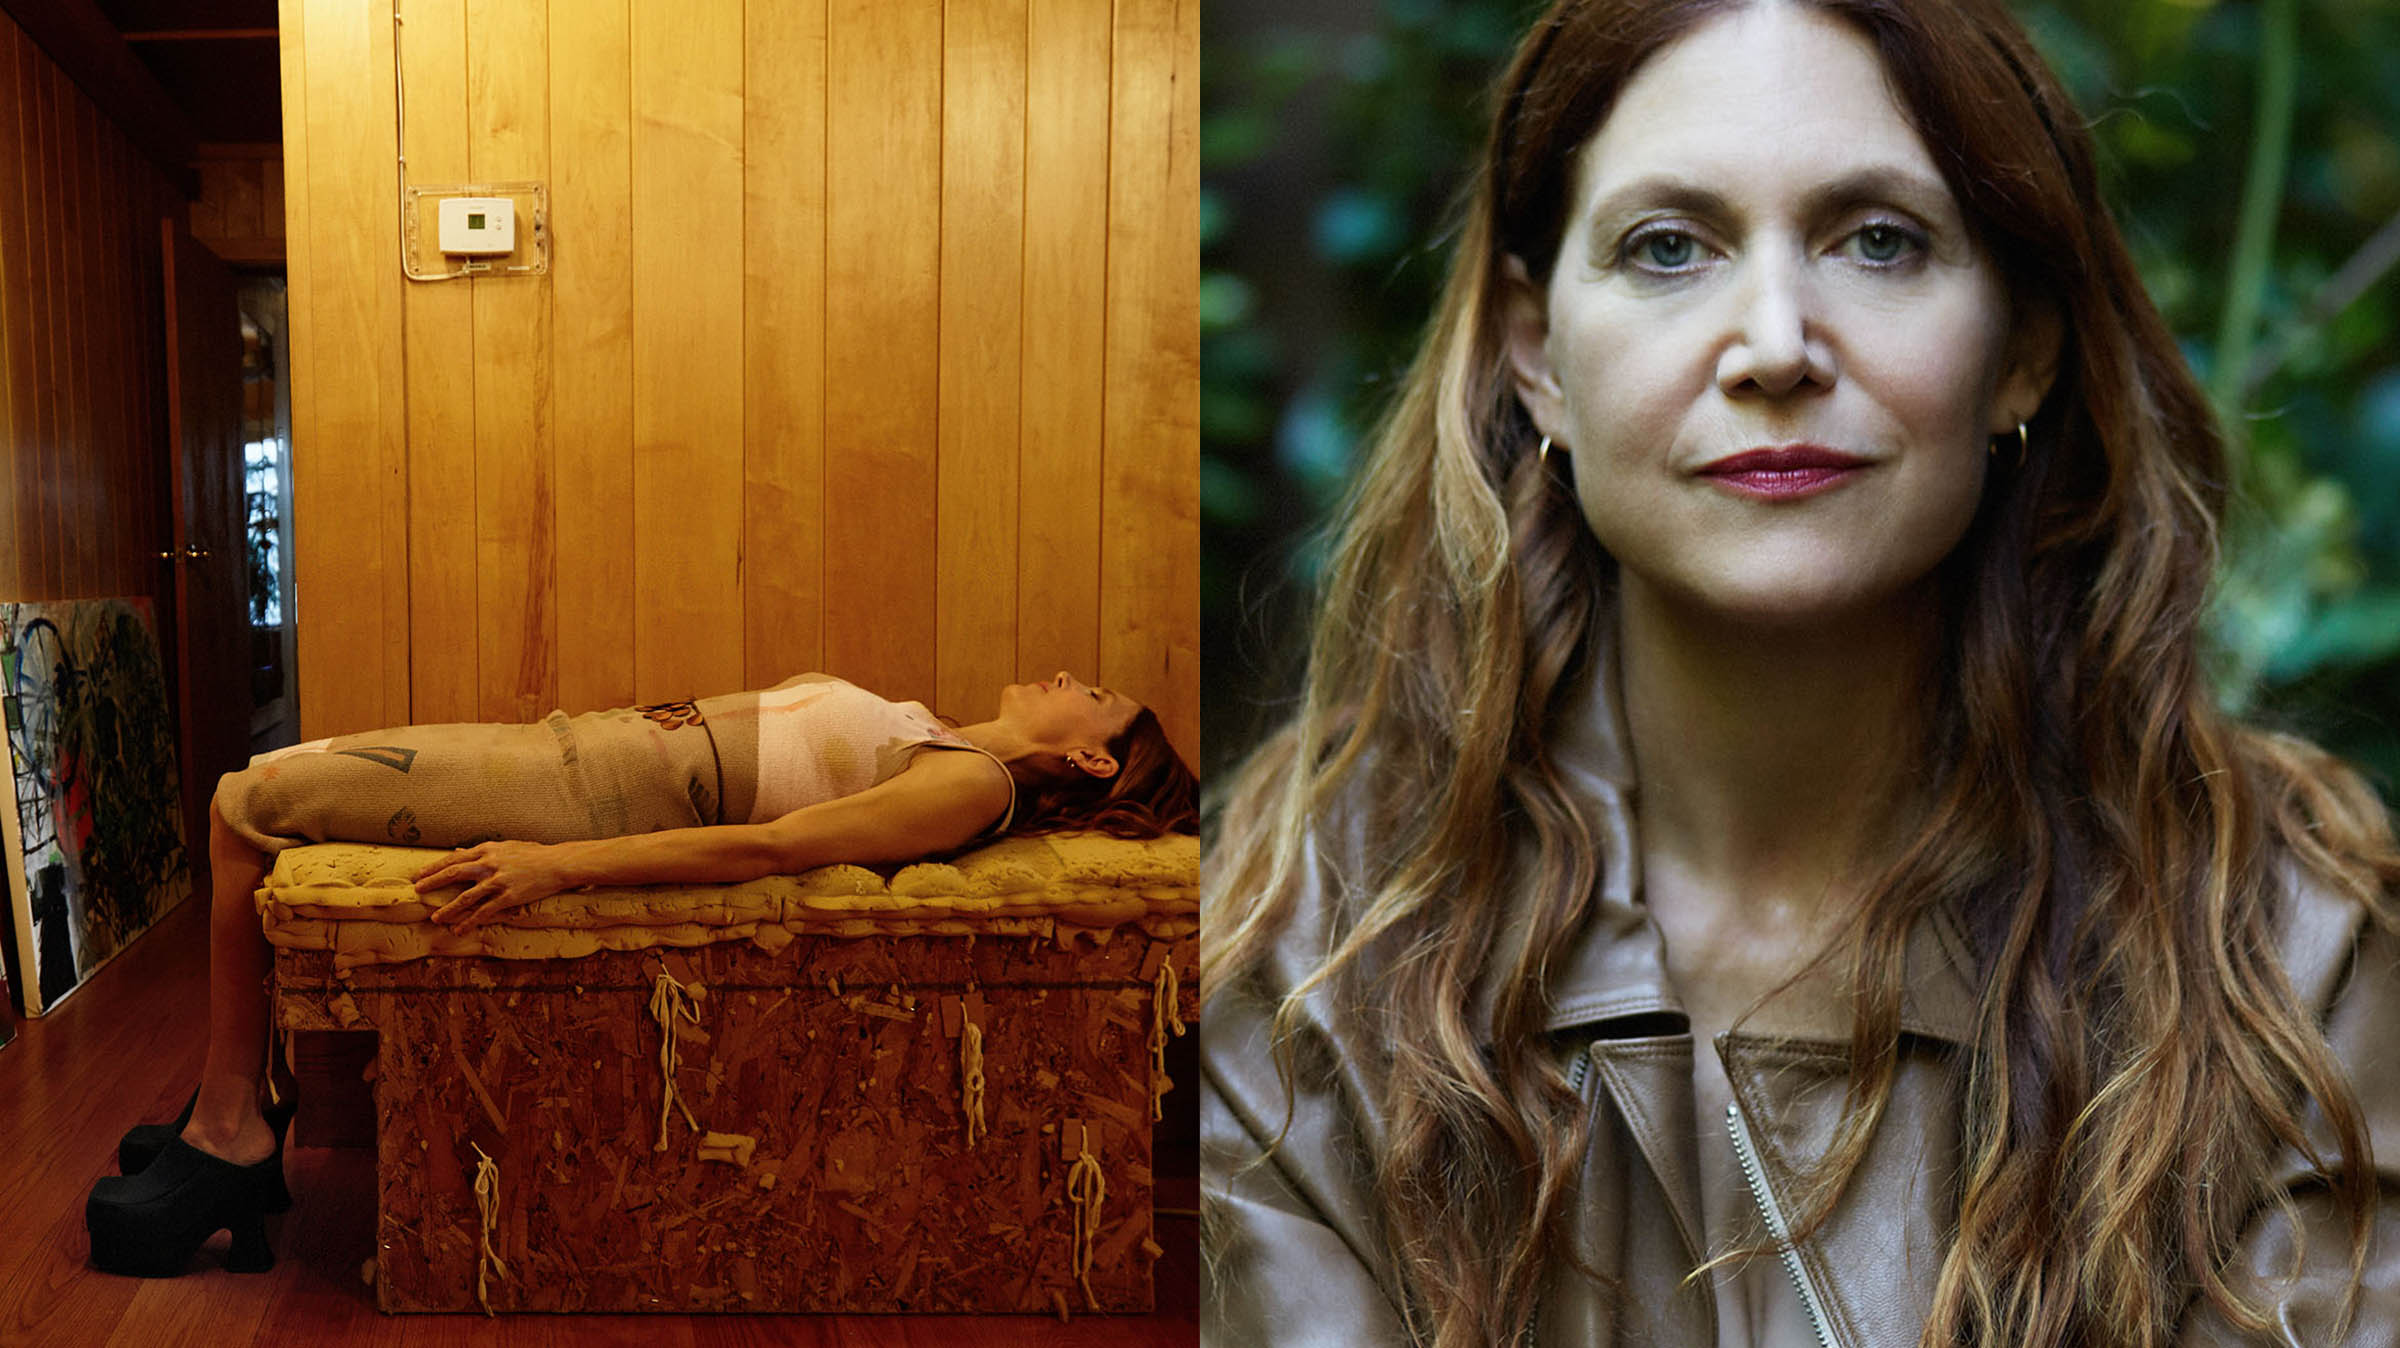 Susan Cianciolo, Mike Eckhaus, and Maryam Nassir Zadeh on creating beauty in ugly times